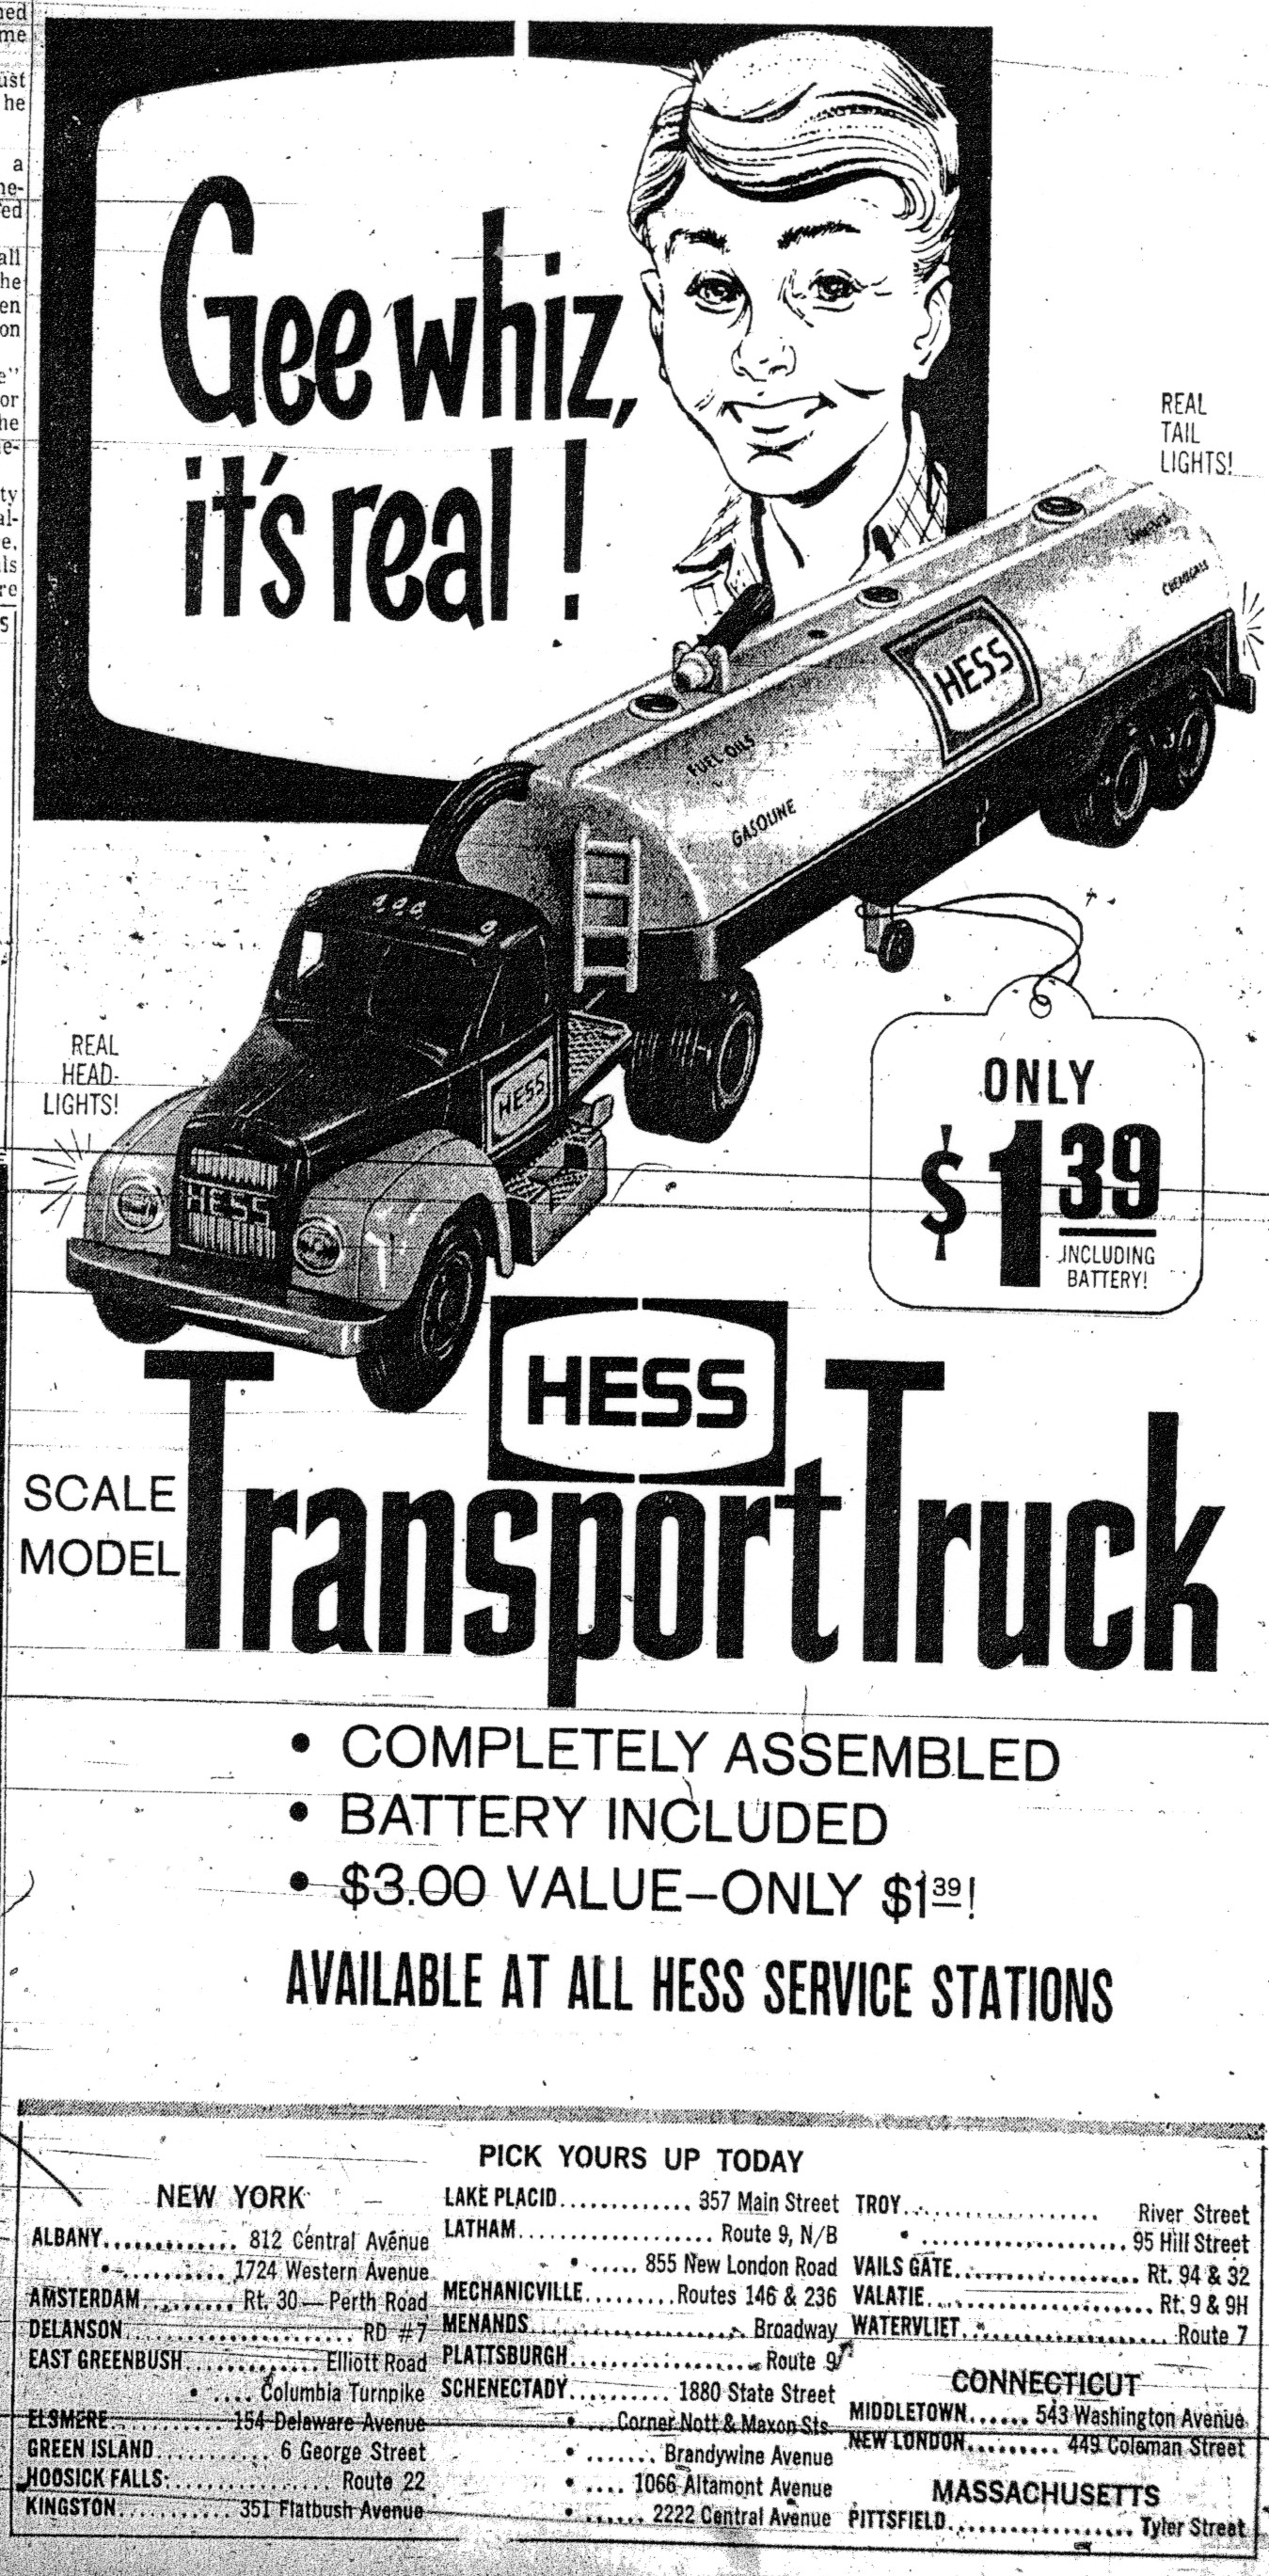 Hess Toy Truck advertisement from 1964.